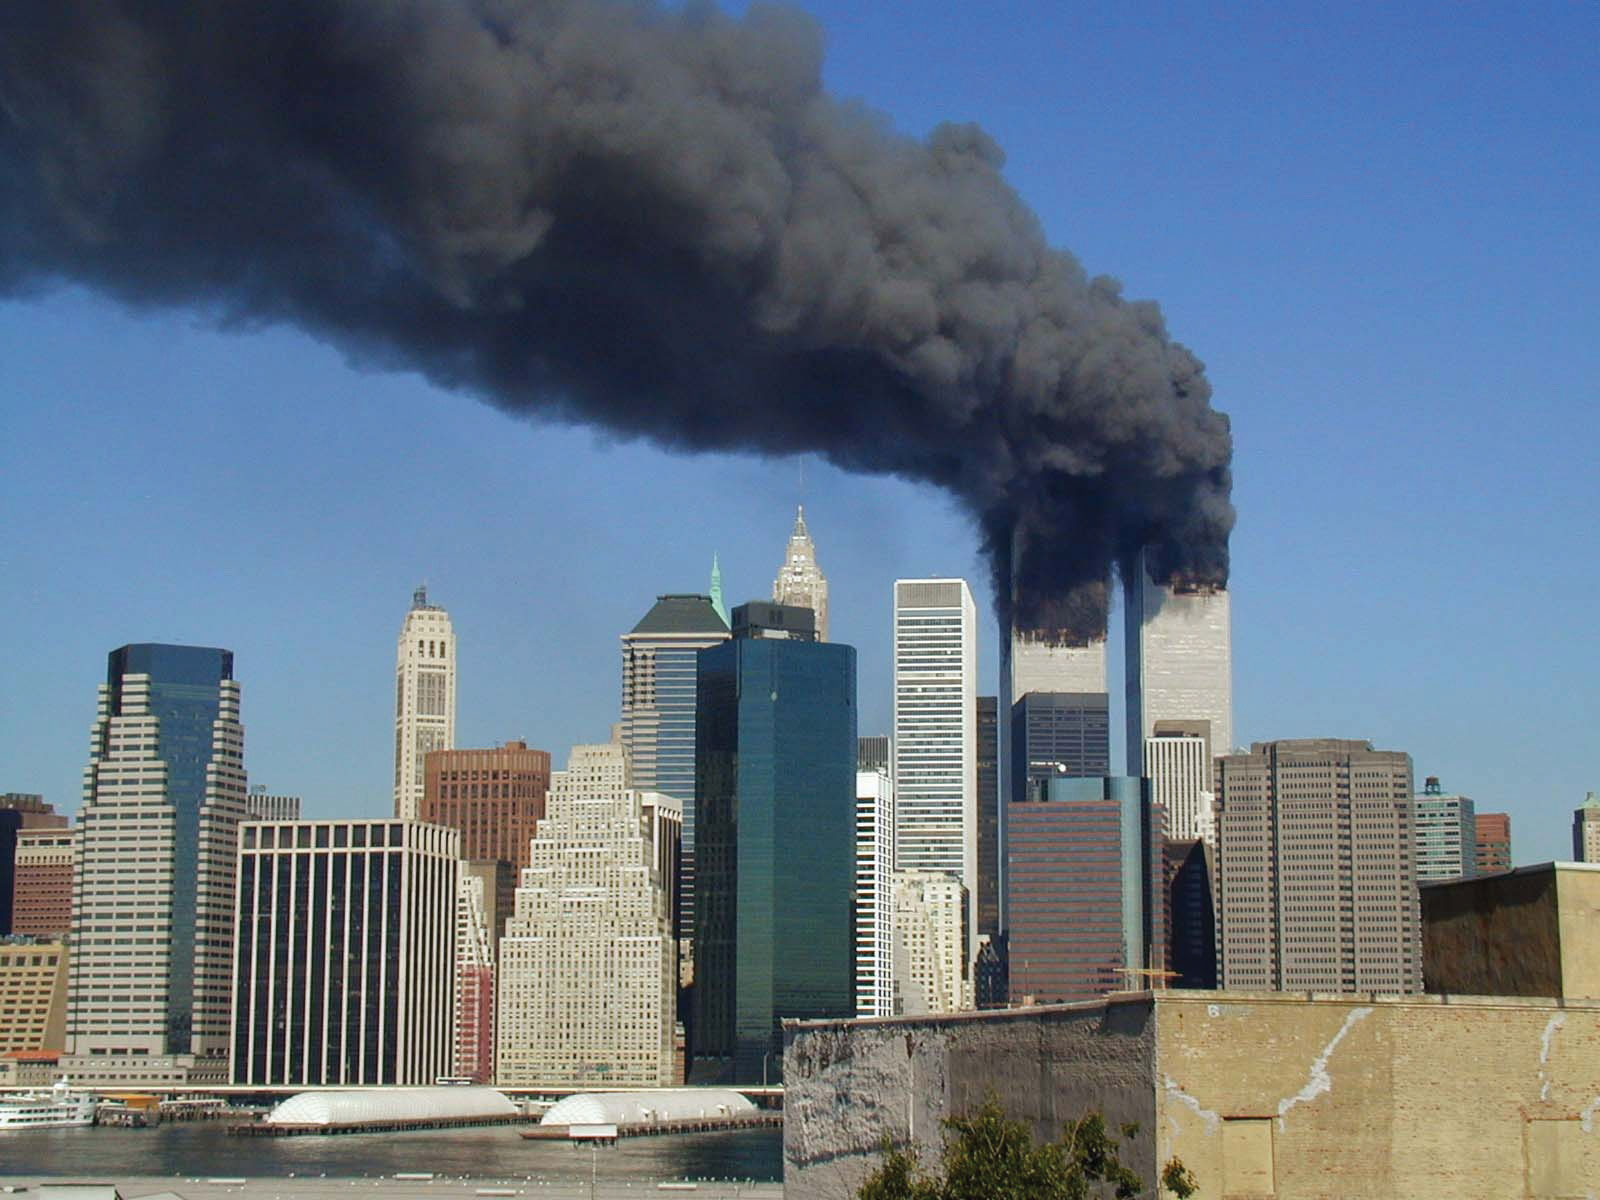 The twin towers still smoking, before they crumbled